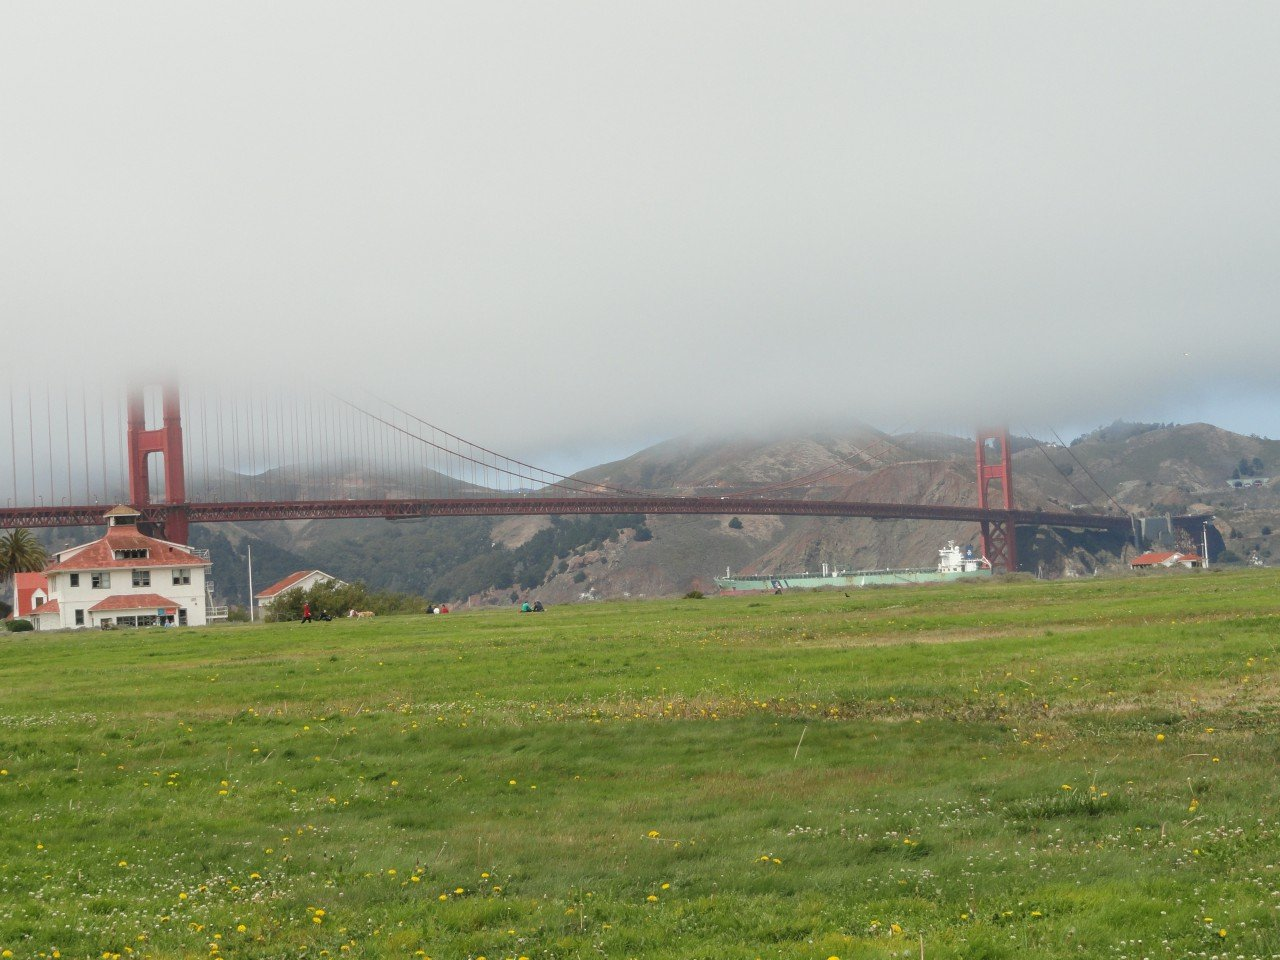 golden bridge, tre giorni a san francisco